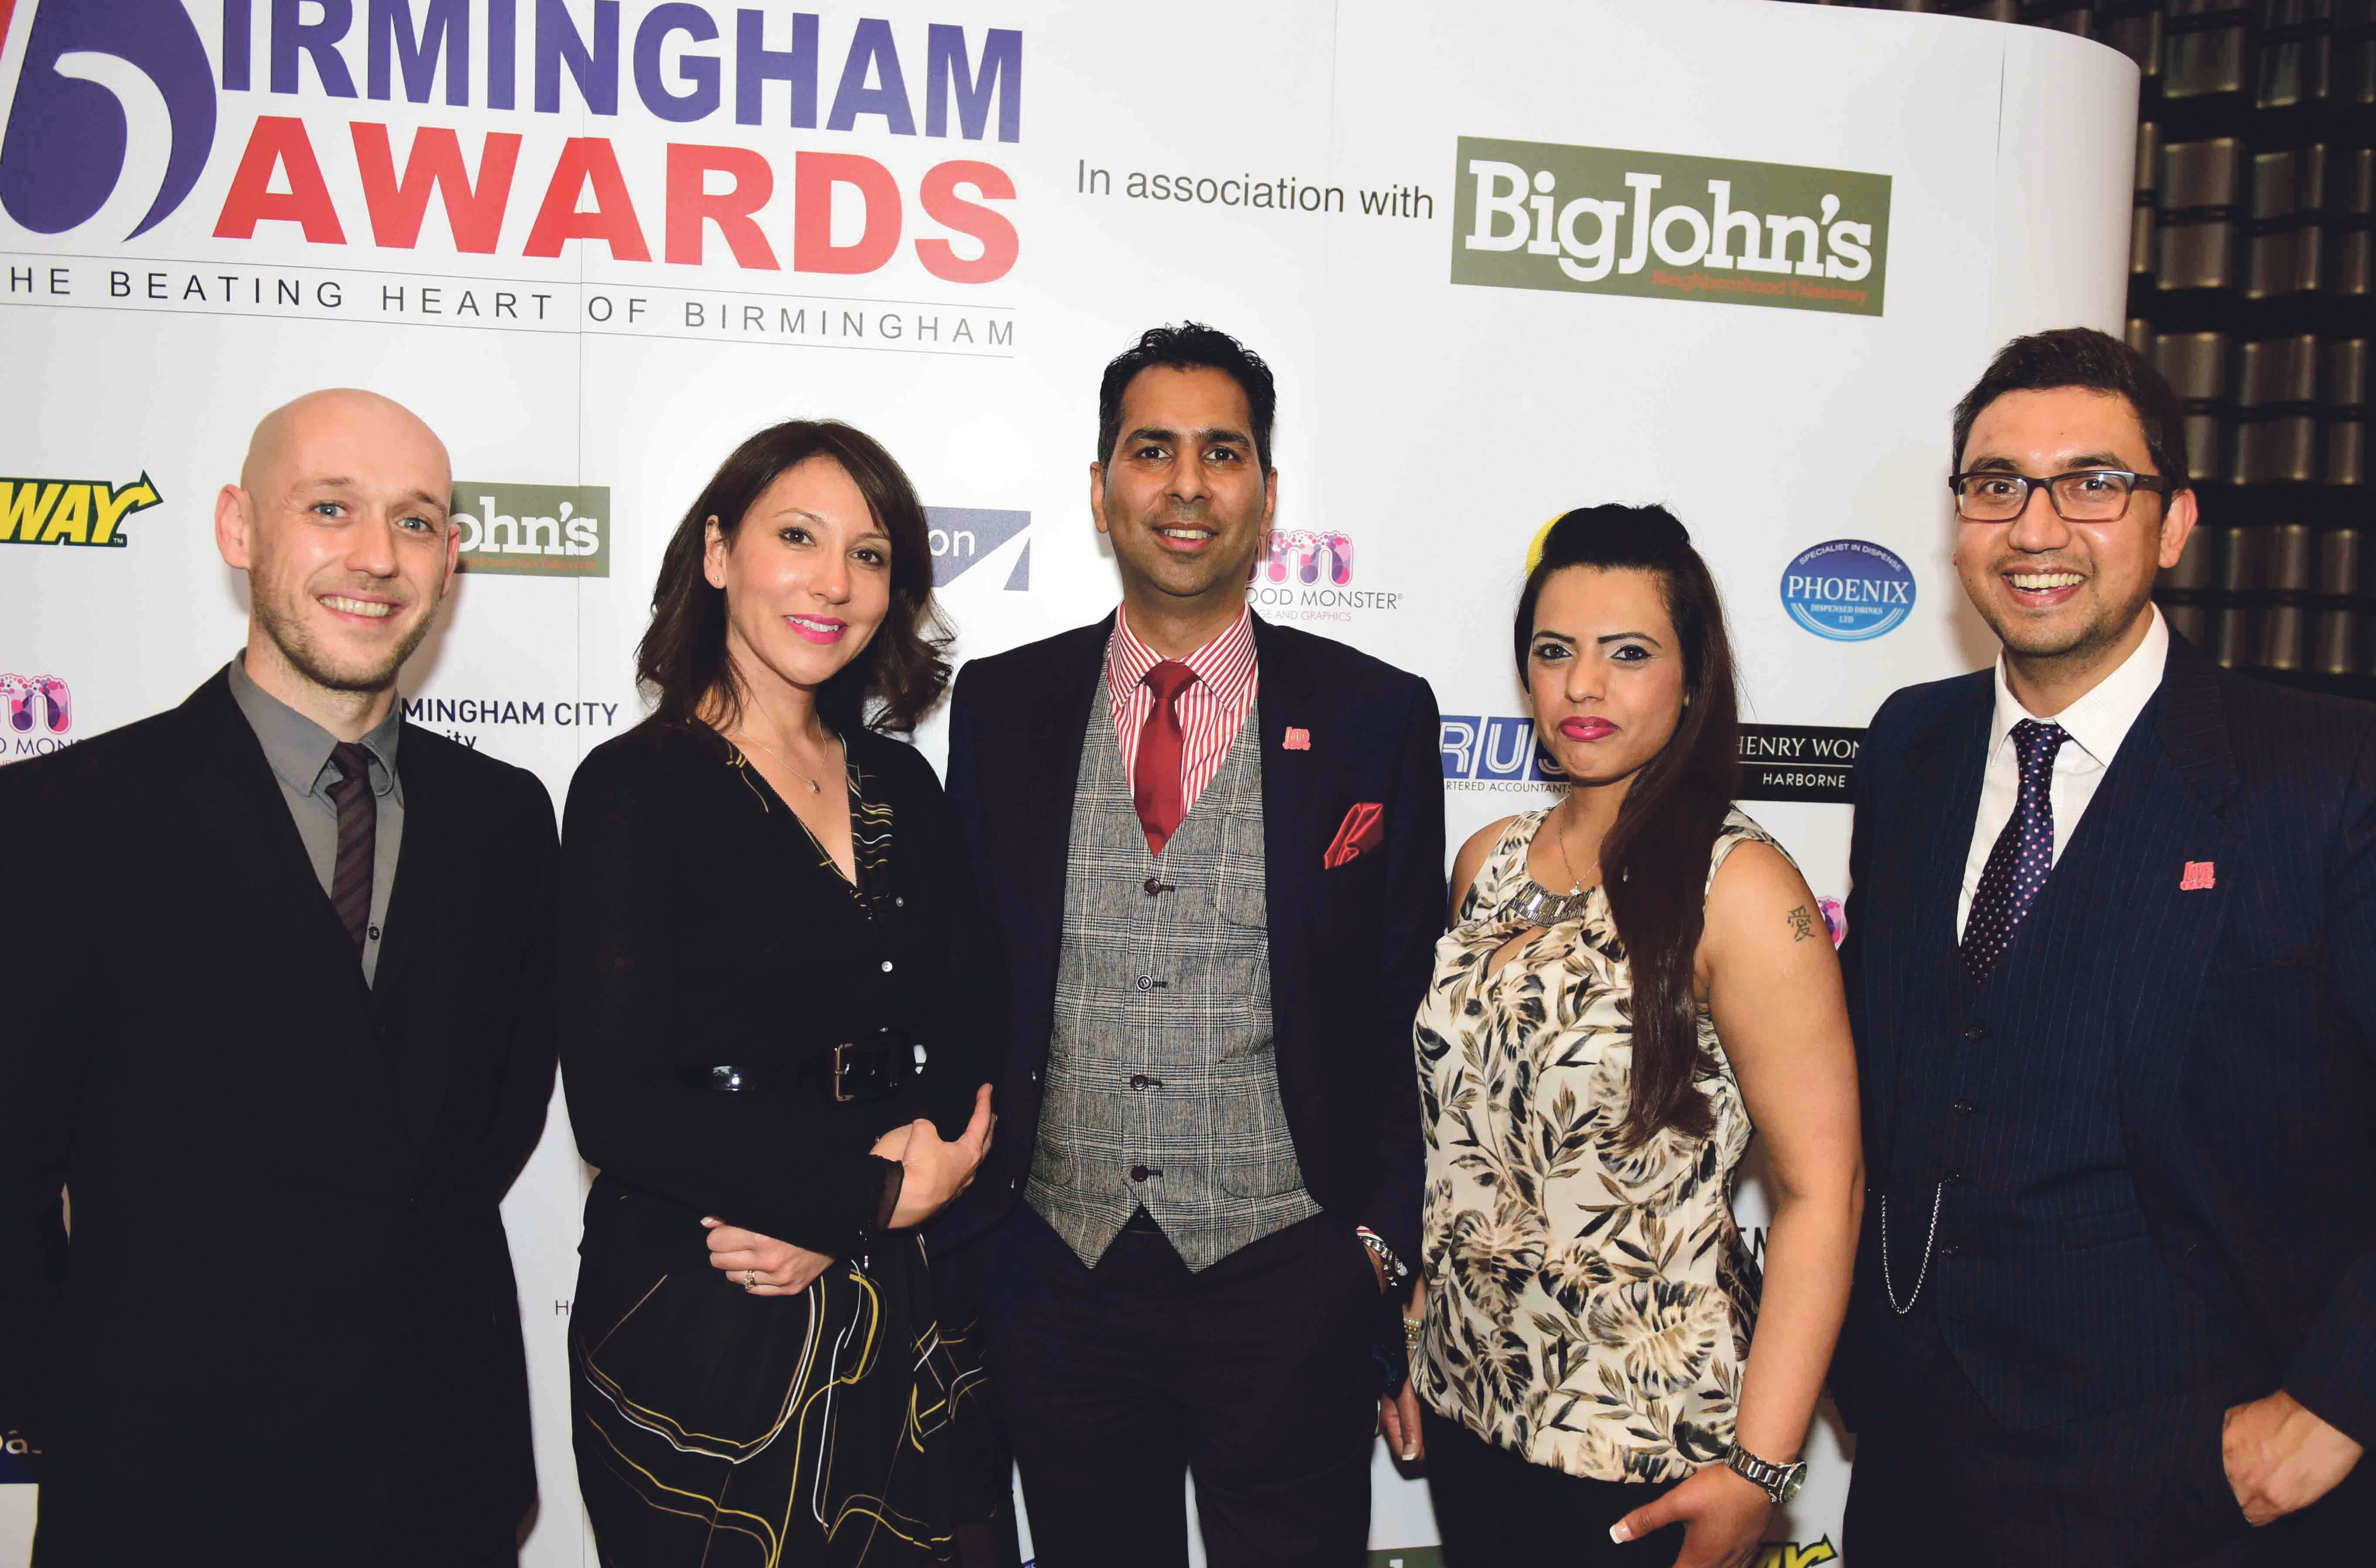 From left: Dan Kelly, Susan Birdy, Ifraz, Anita (Co-Founders of Birmingham Awards) & Raaj Shamji